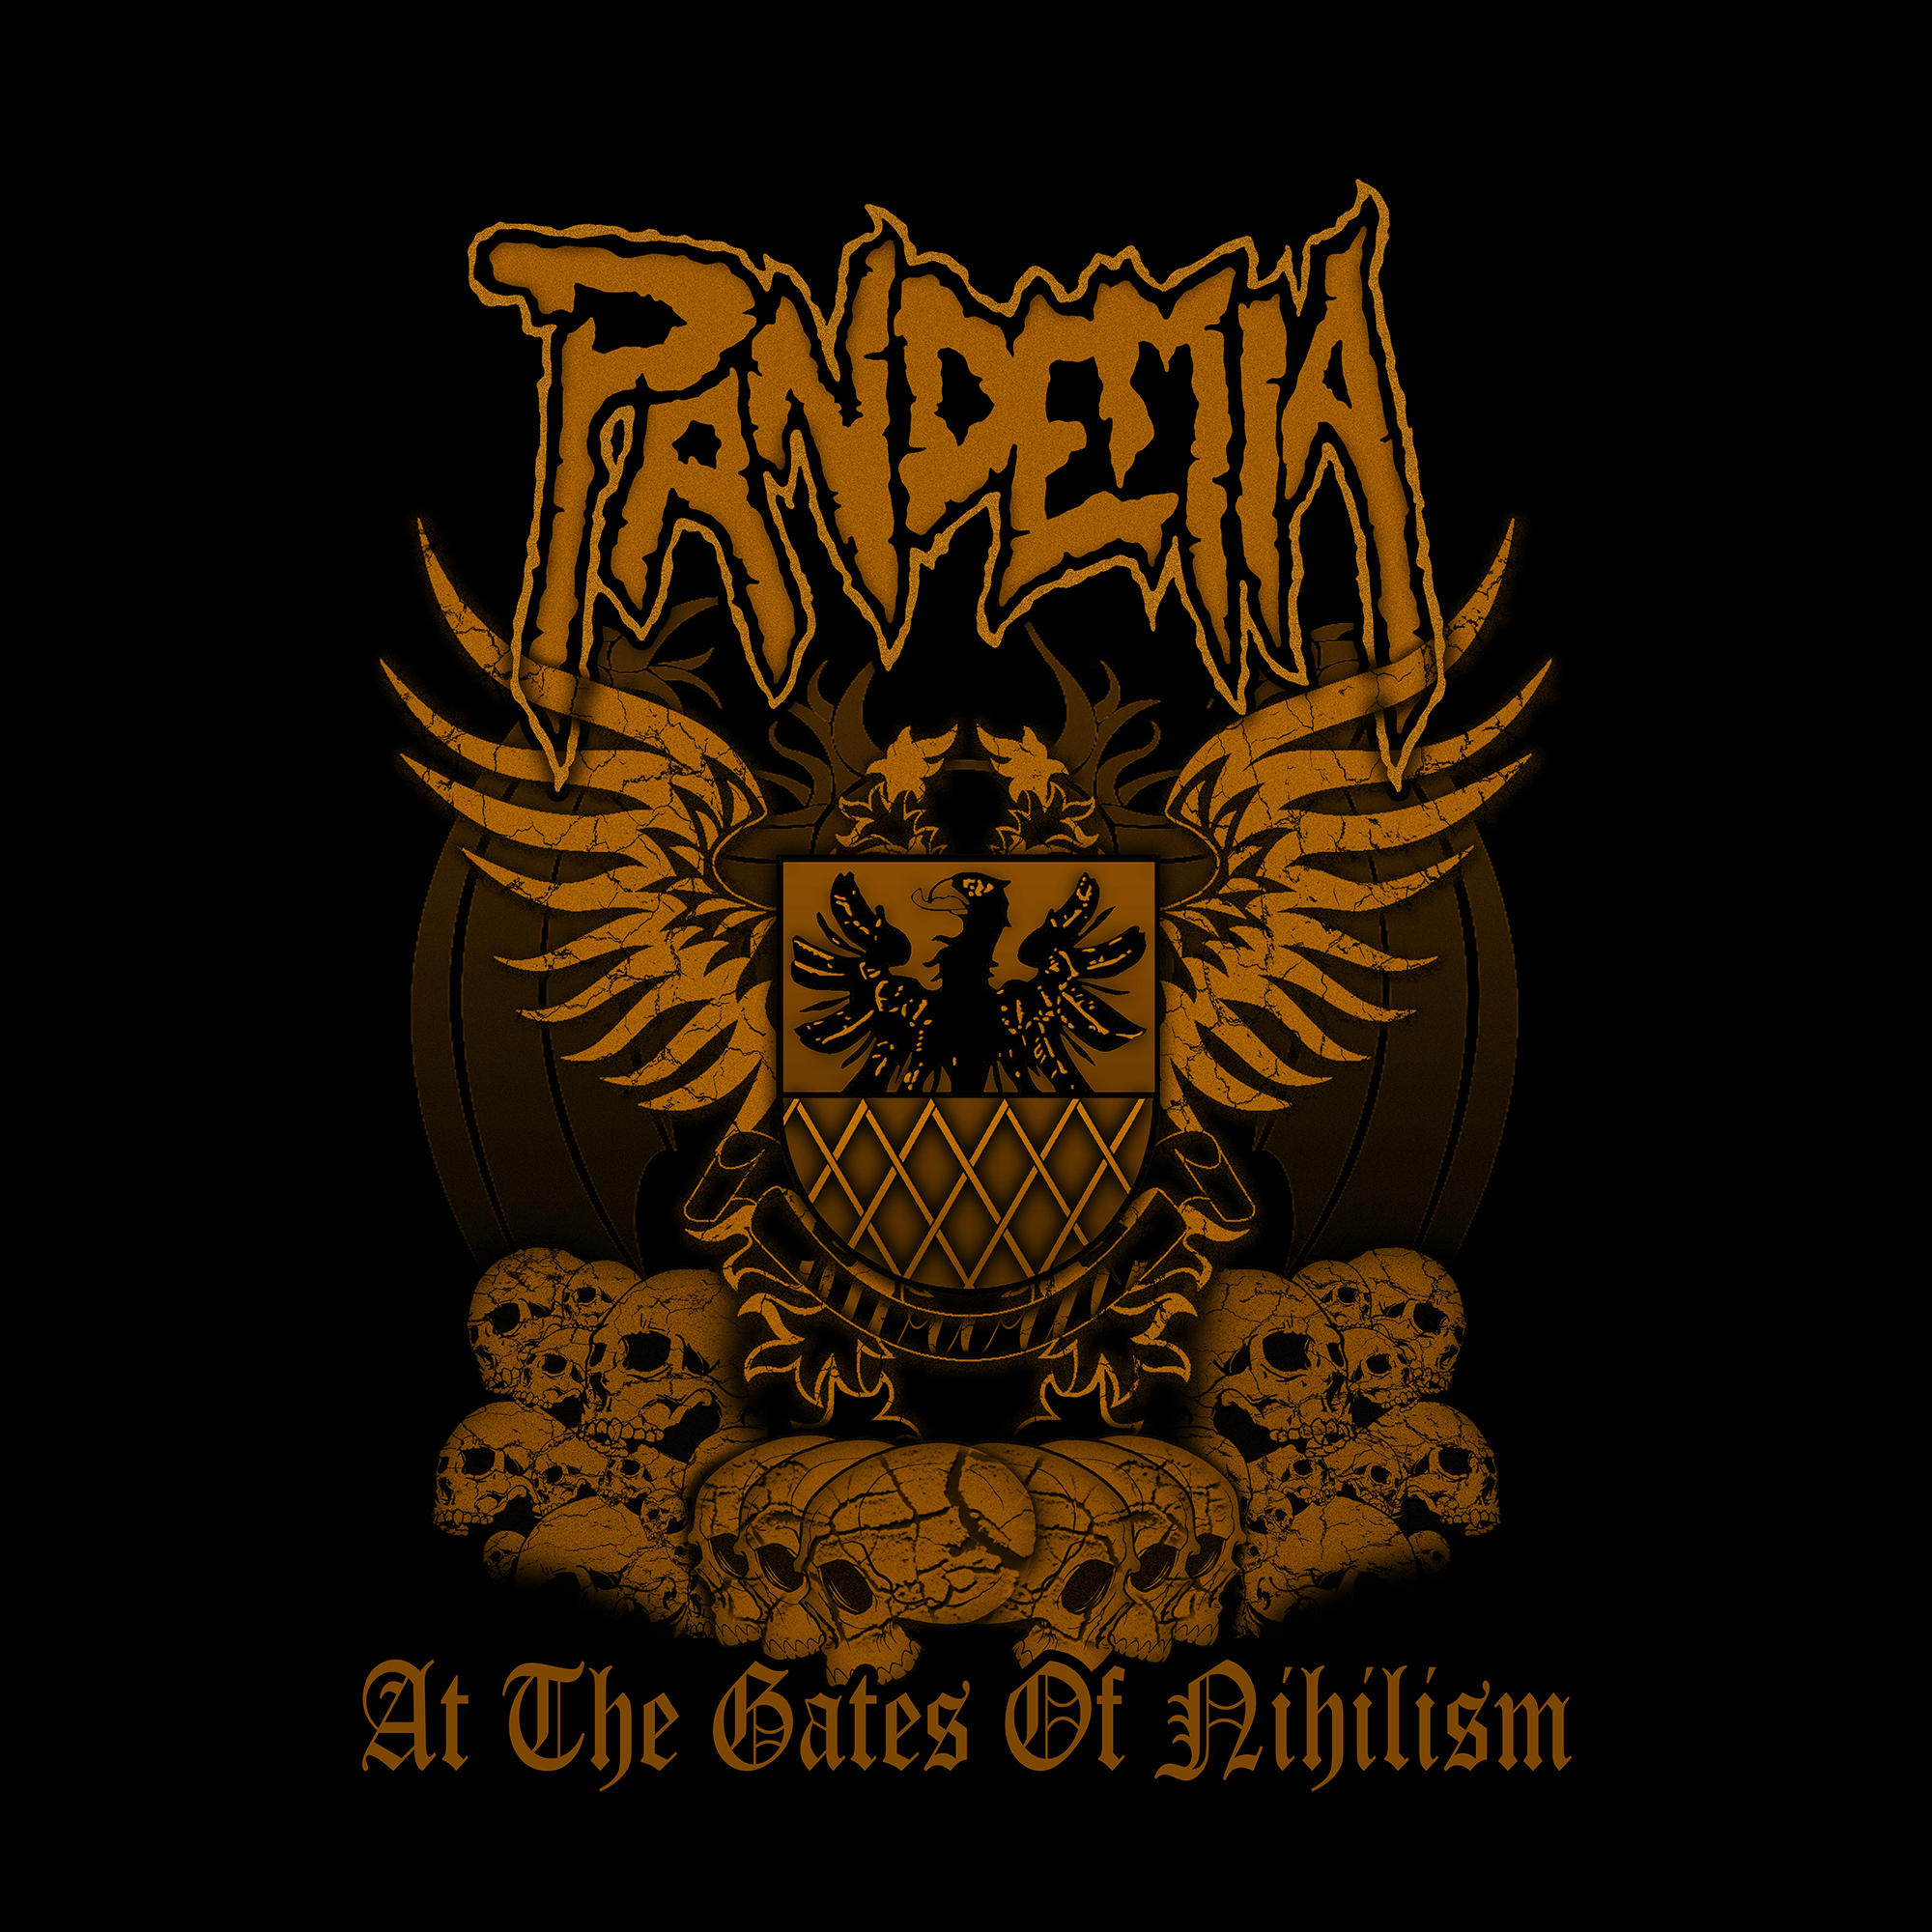 Pandemia – At the Gates of Nihilism